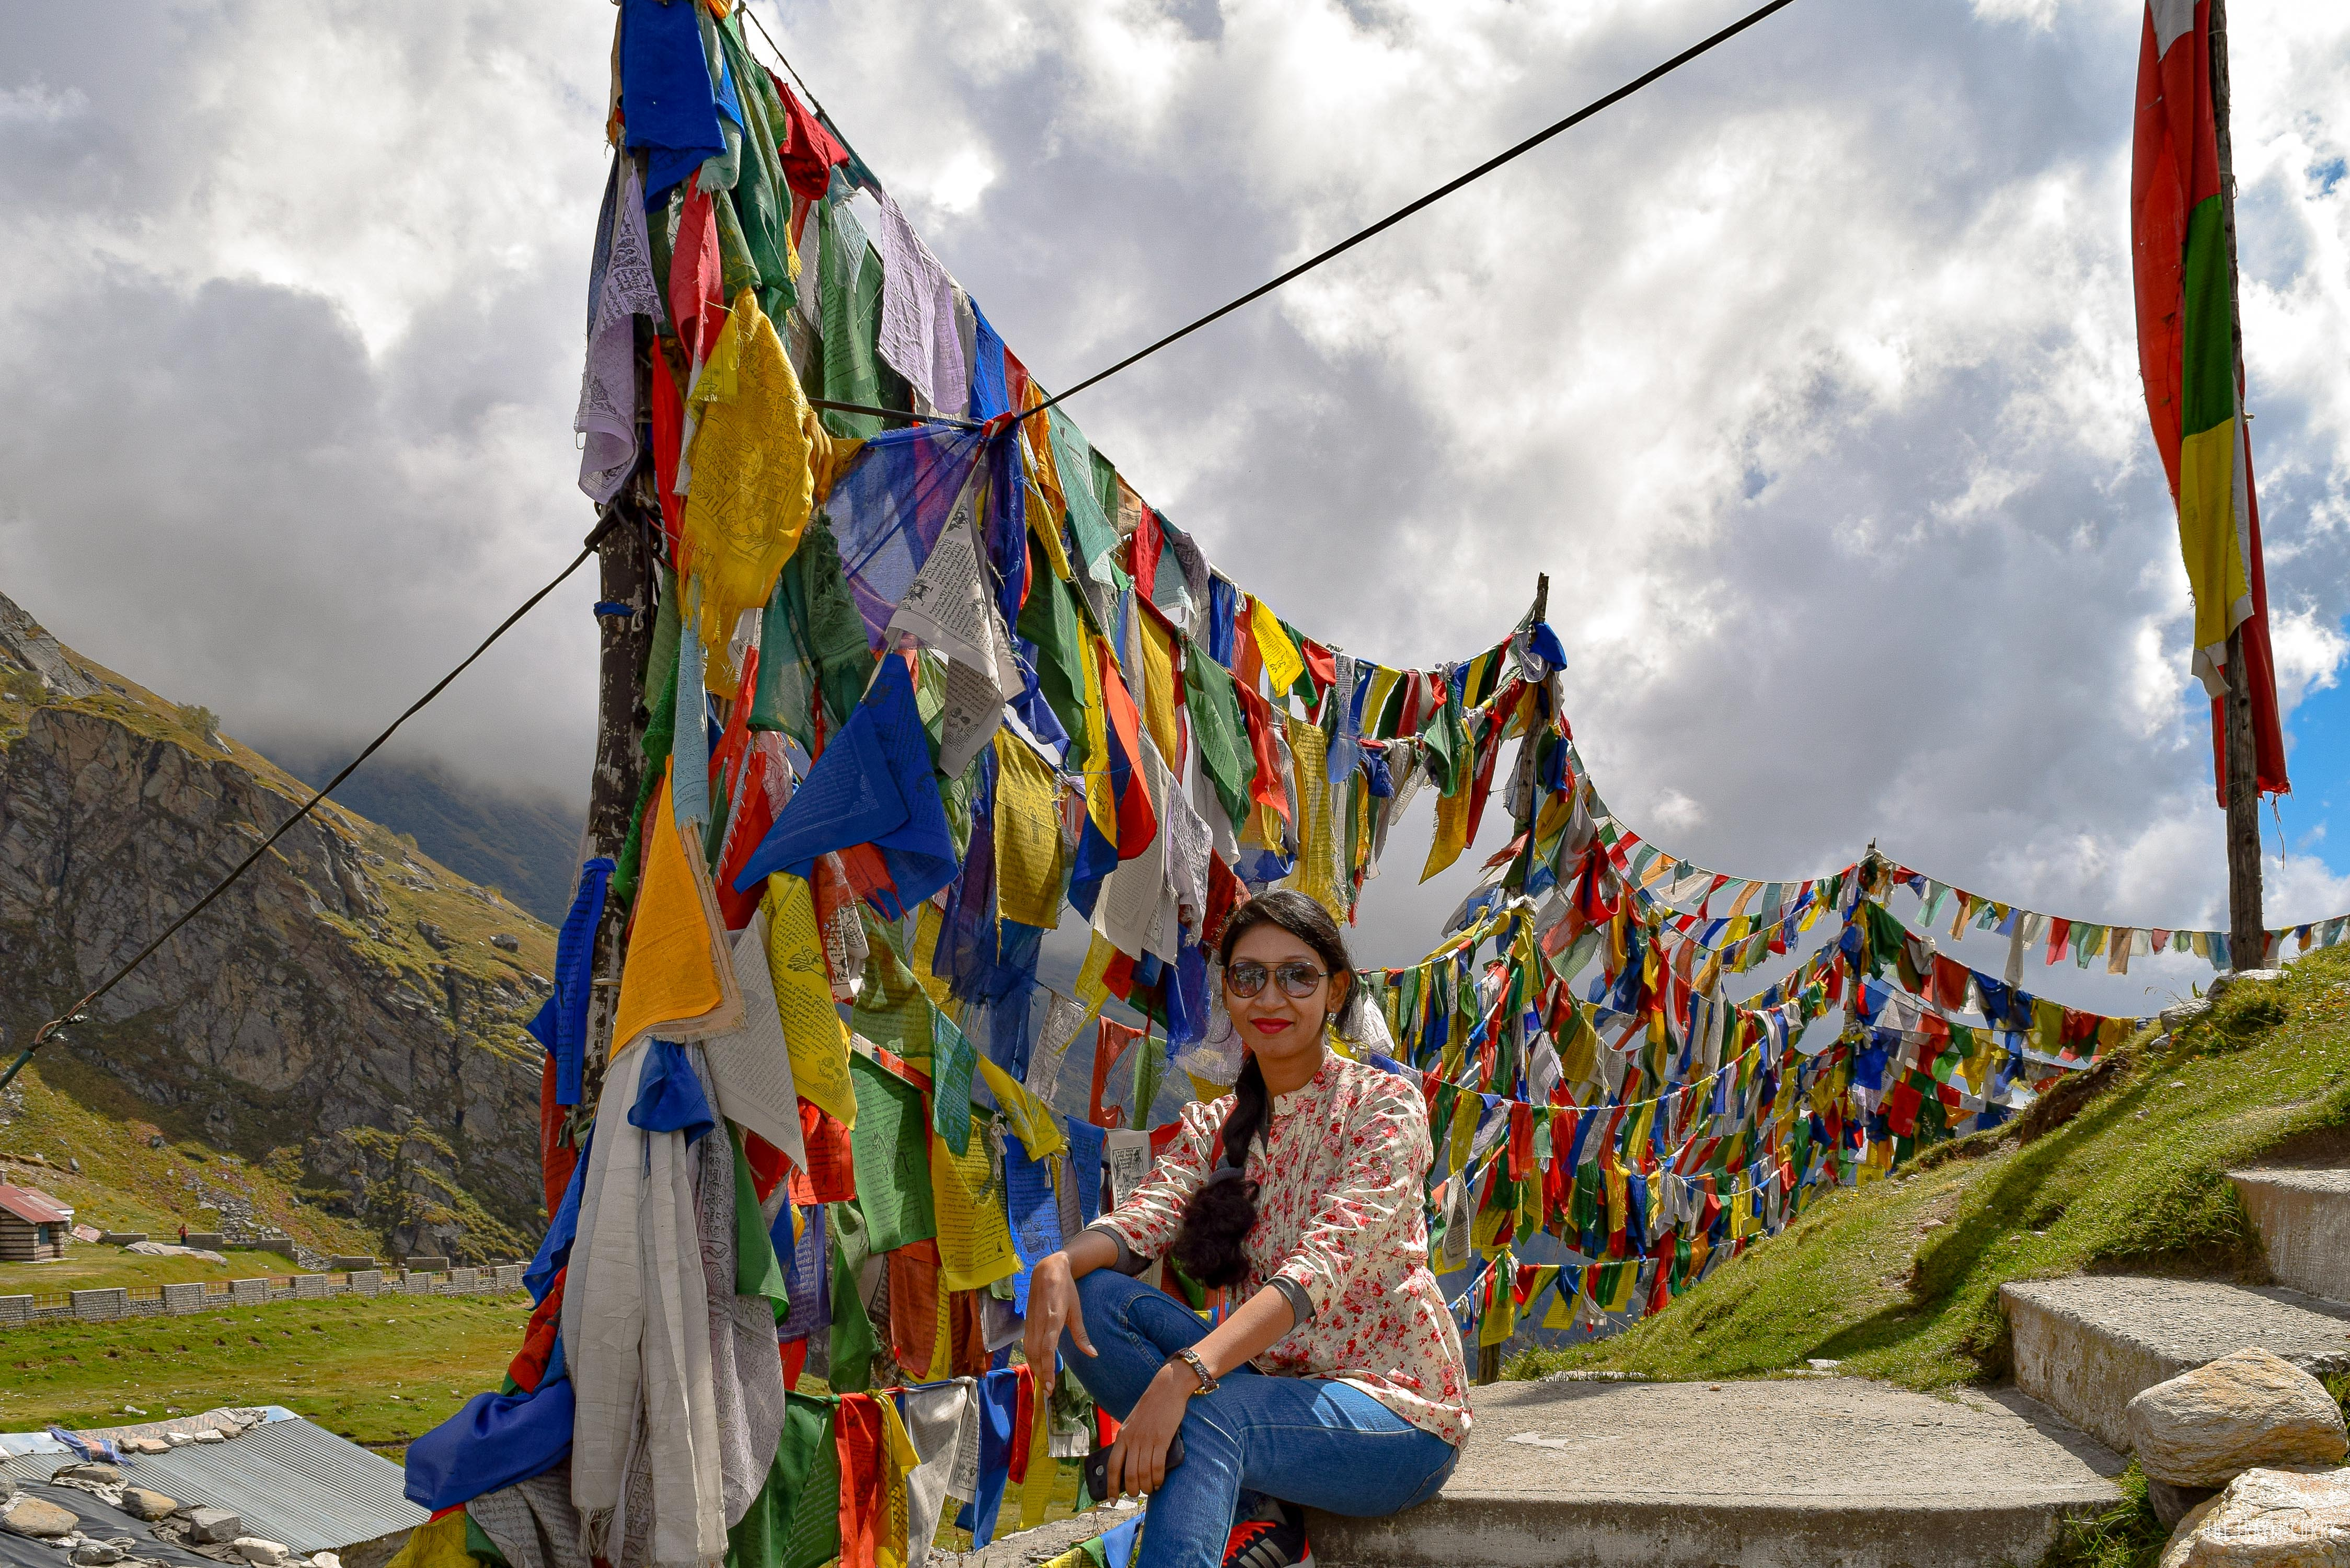 With the prayer flags